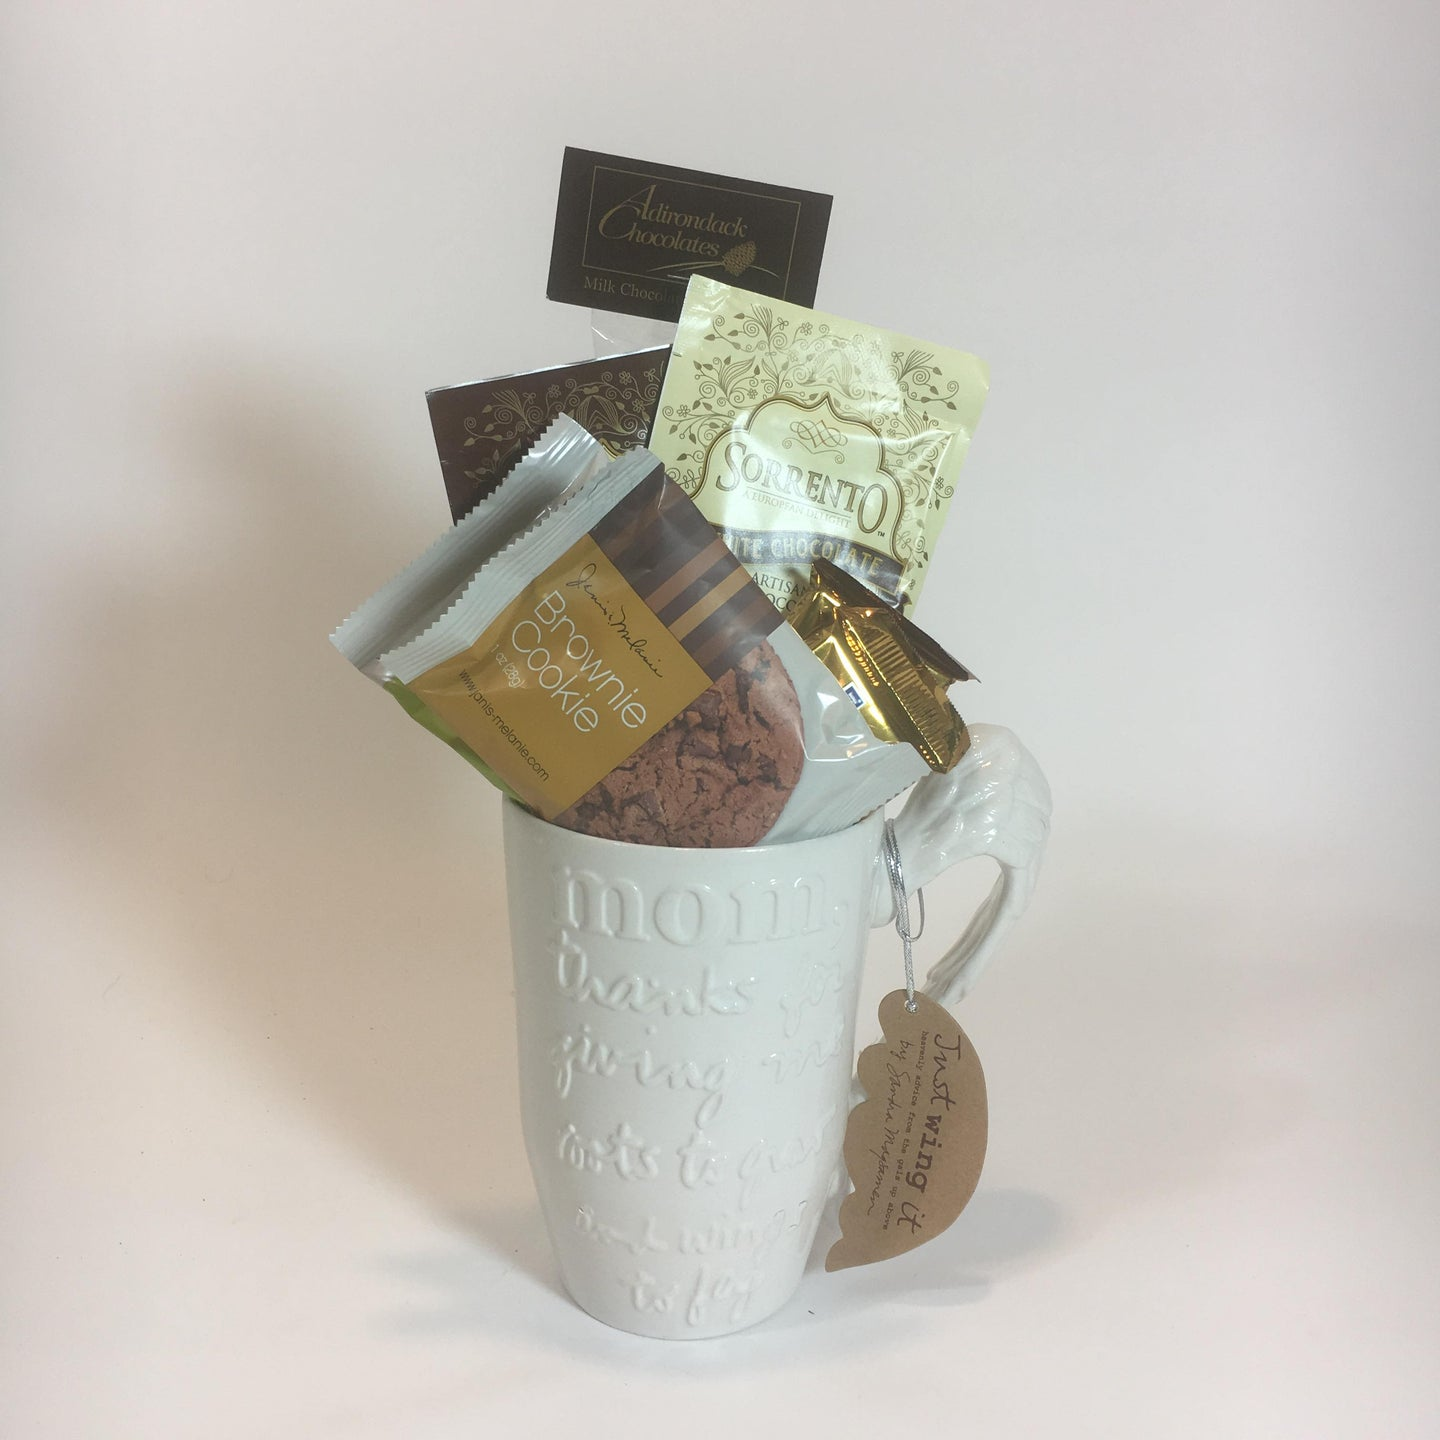 Mom mug with wing handle, with cookies chocolates cocoas